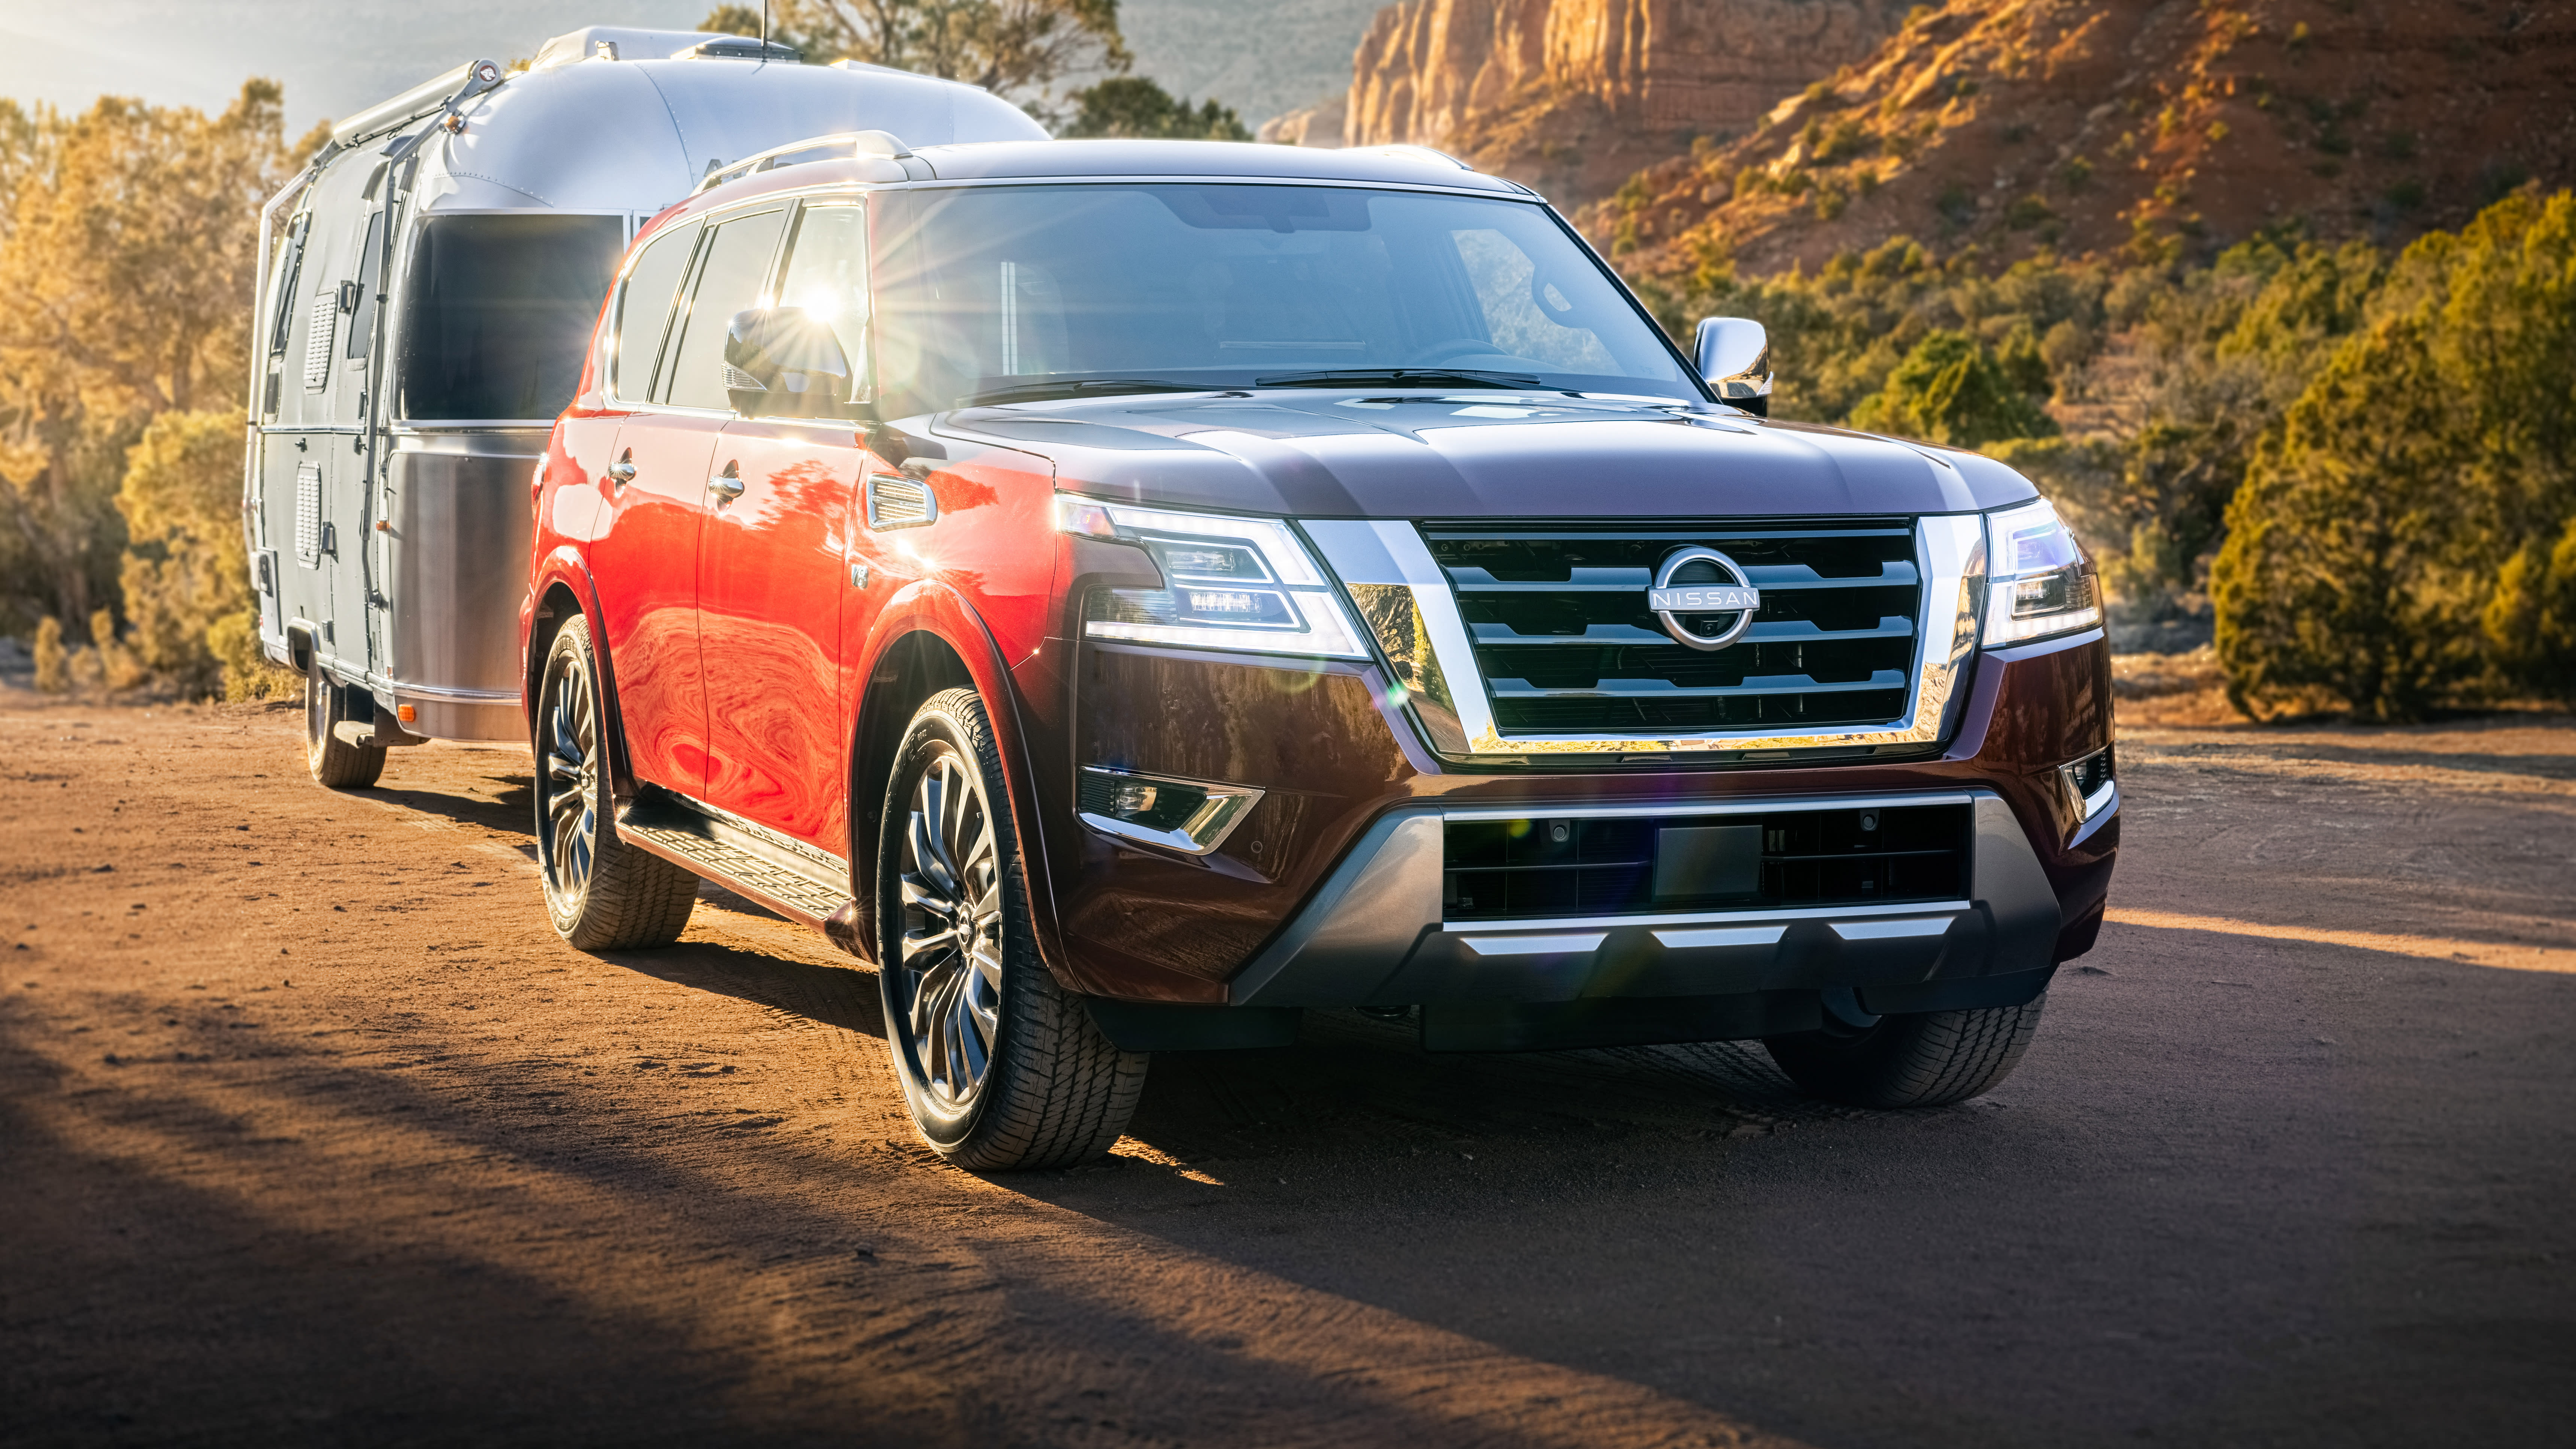 2021 Nissan Patrol Facelift Unveiled Update Australian Arrival Ruled Out Caradvice